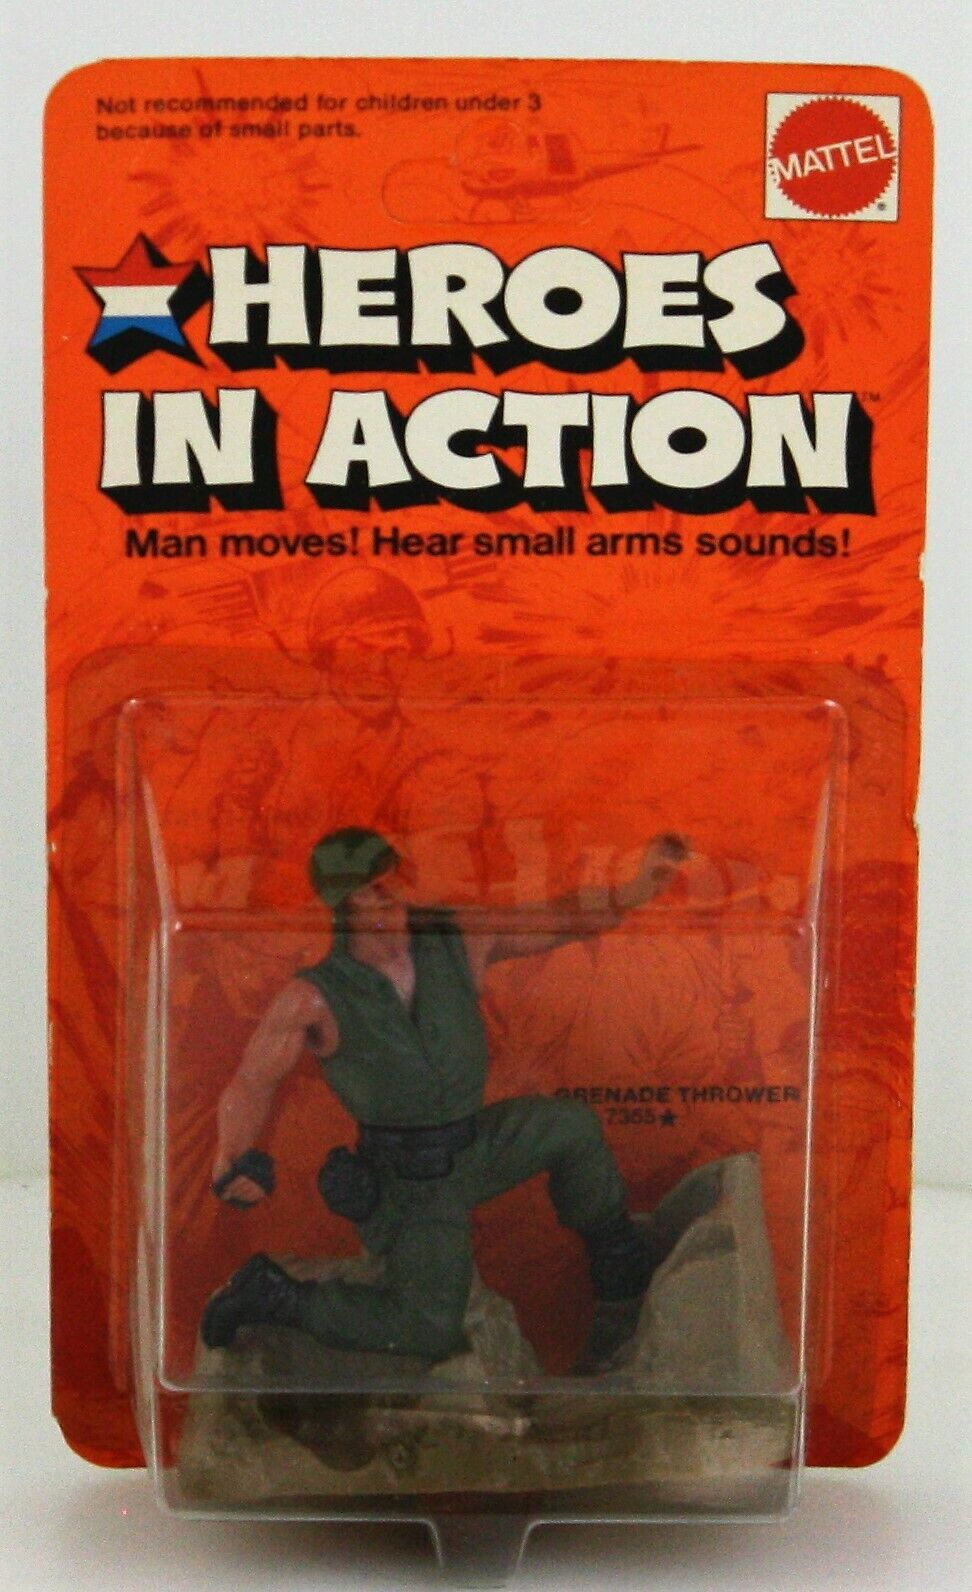 Jahr Mattel HEROES IN Wirkung Wirkung Figure 1974 Grenade Thrower Fall FRESH